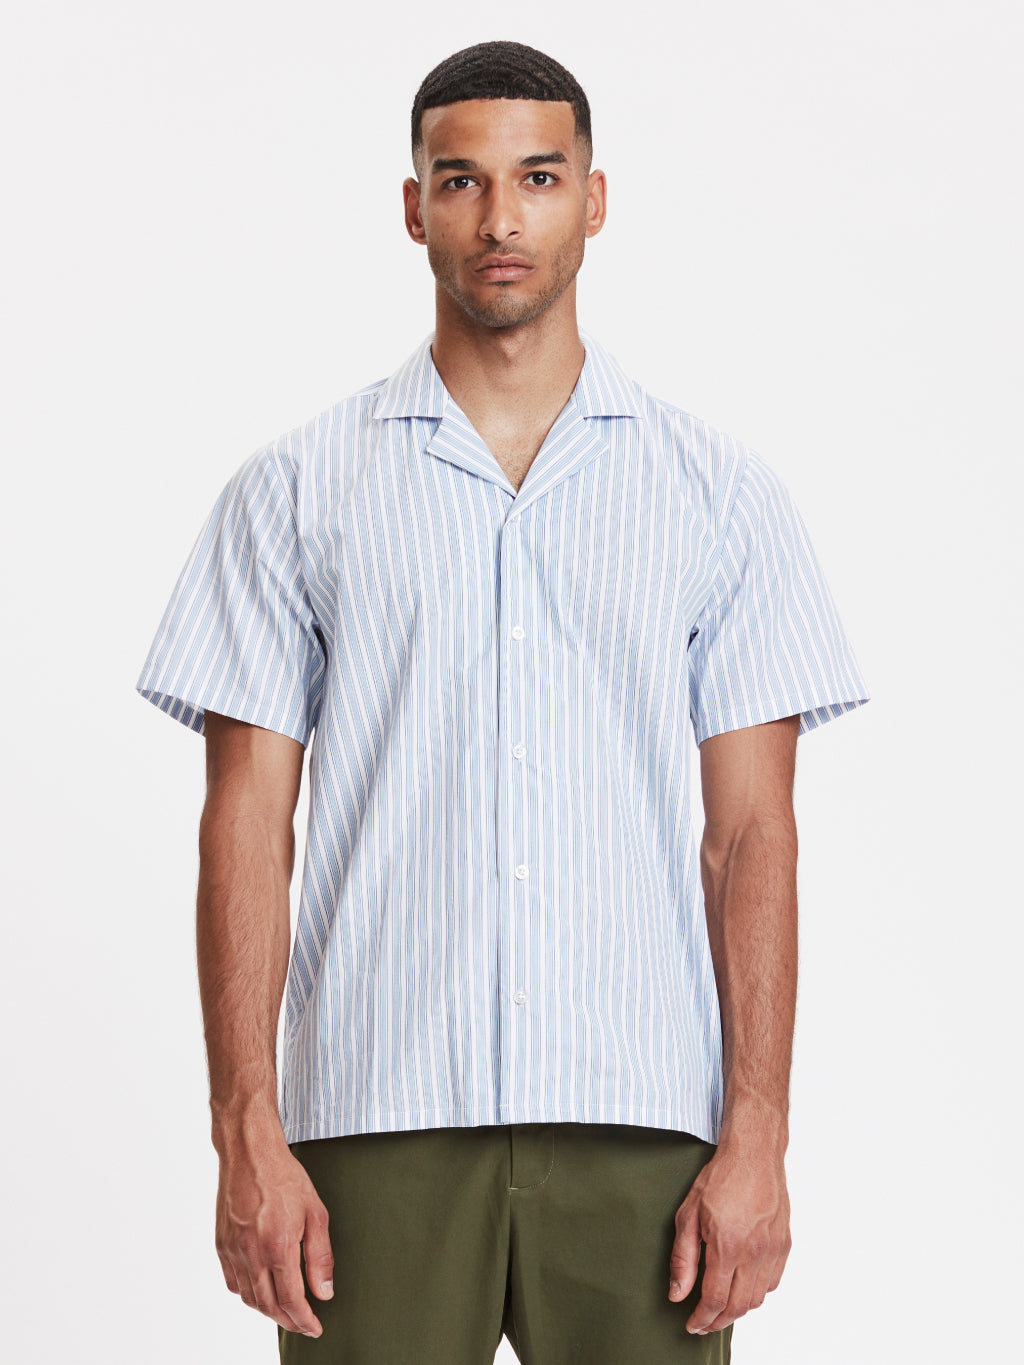 Clark Shirt | Light Blue Striped